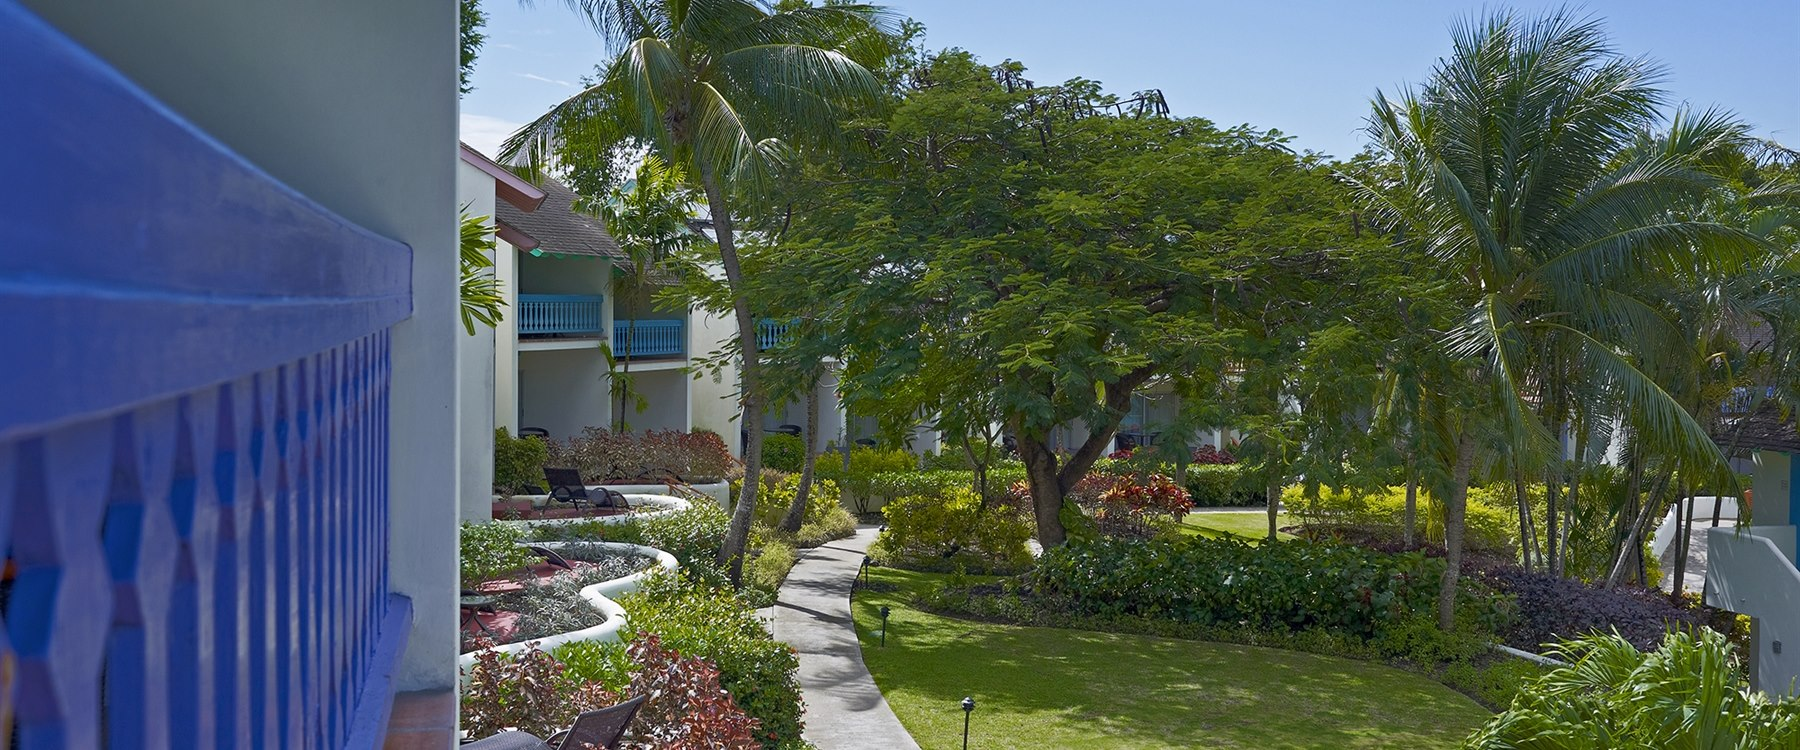 Garden View Bedrooms at Crystal Cove by Elegant Hotels, Barbados